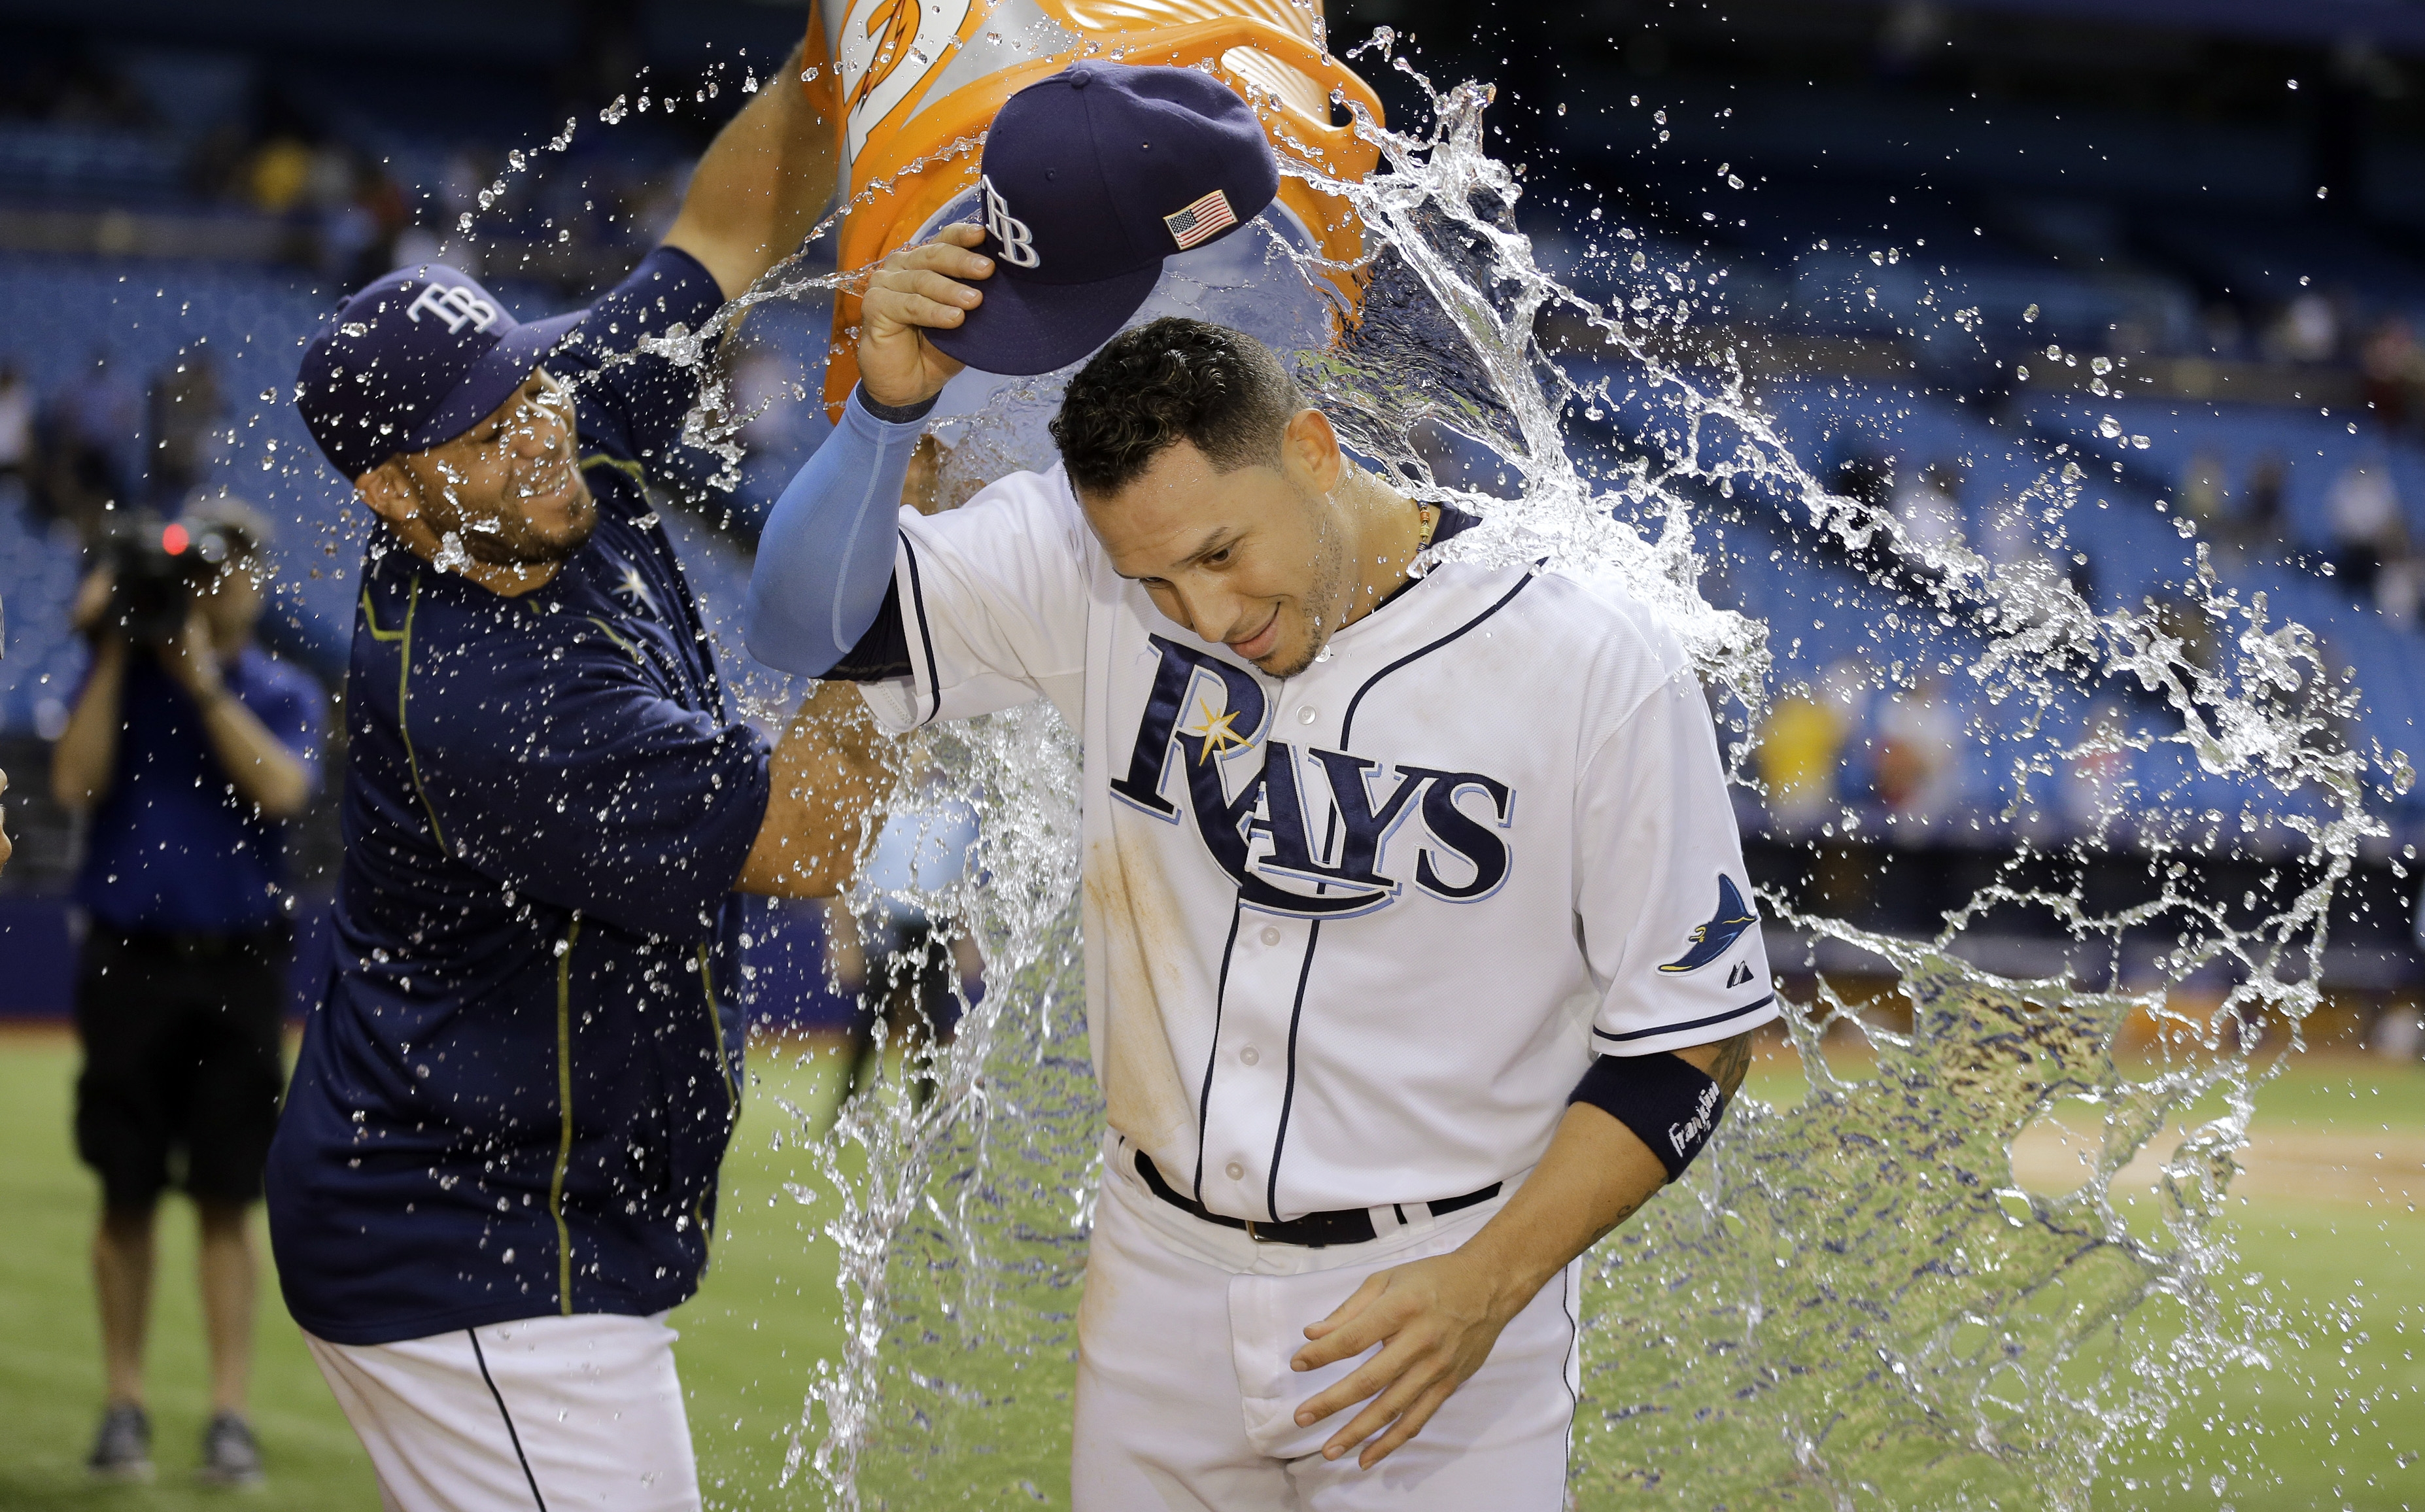 Tampa Bay Rays' Asdrubal Cabrera, right, get doused with water by Rene Rivera after the Rays defeated the Boston Red Sox 8-4 in a baseball game Friday, Sept. 11, 2015, in St. Petersburg, Fla.  Cabrera had a two-run home run in the win. (AP Photo/Chris O'M